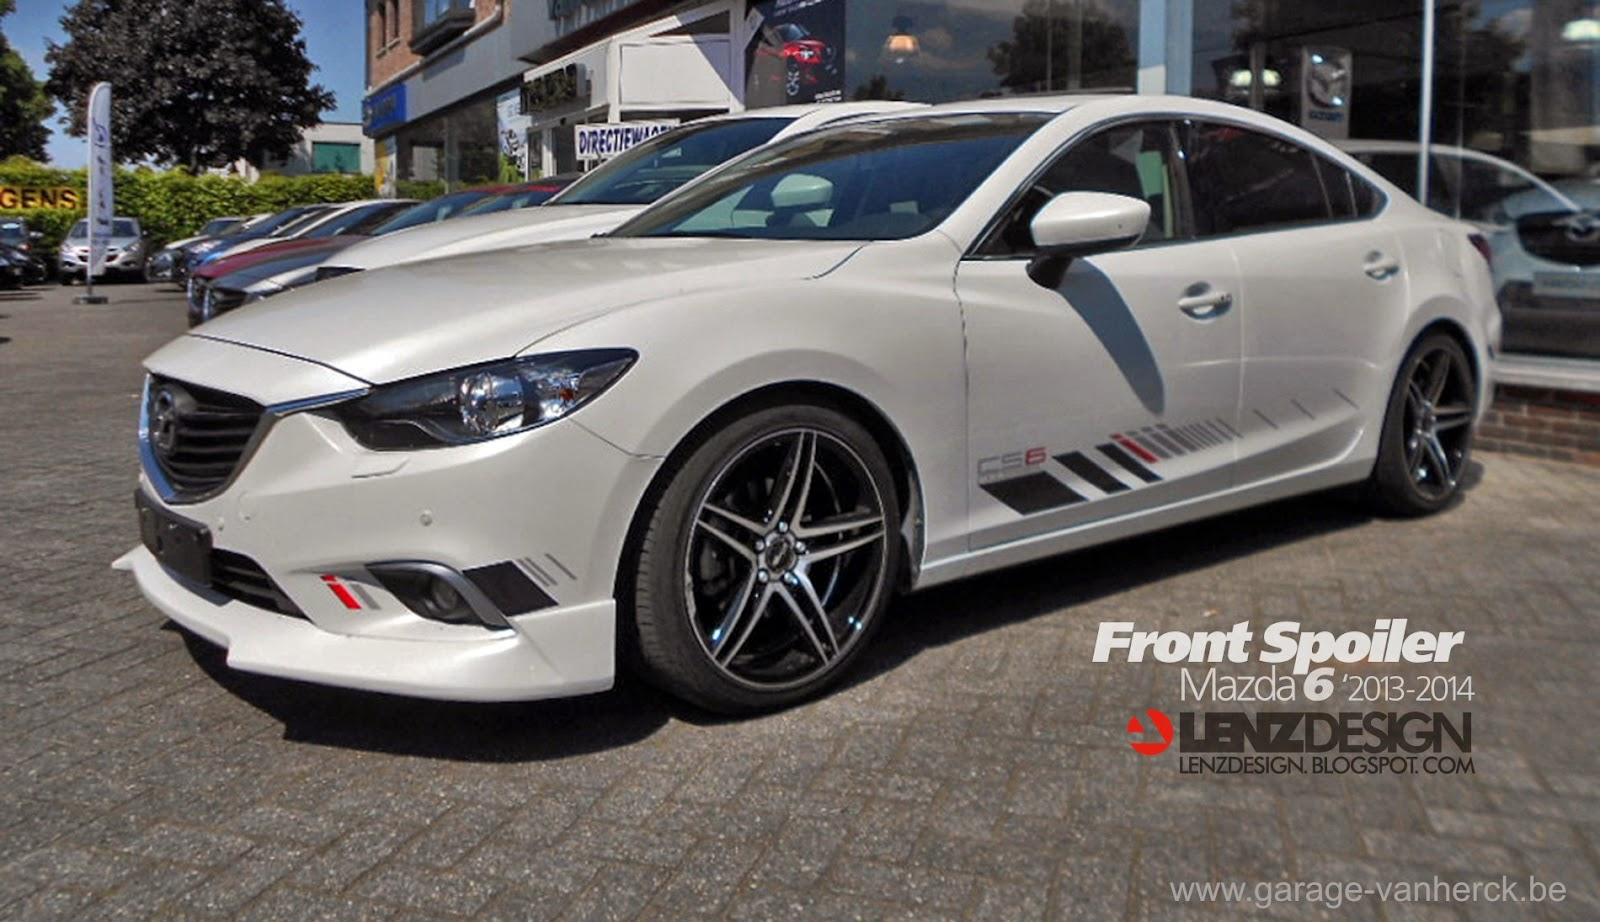 mazda 6 2013 tuning body kit lenzdesign performance project israel auto cars benz. Black Bedroom Furniture Sets. Home Design Ideas